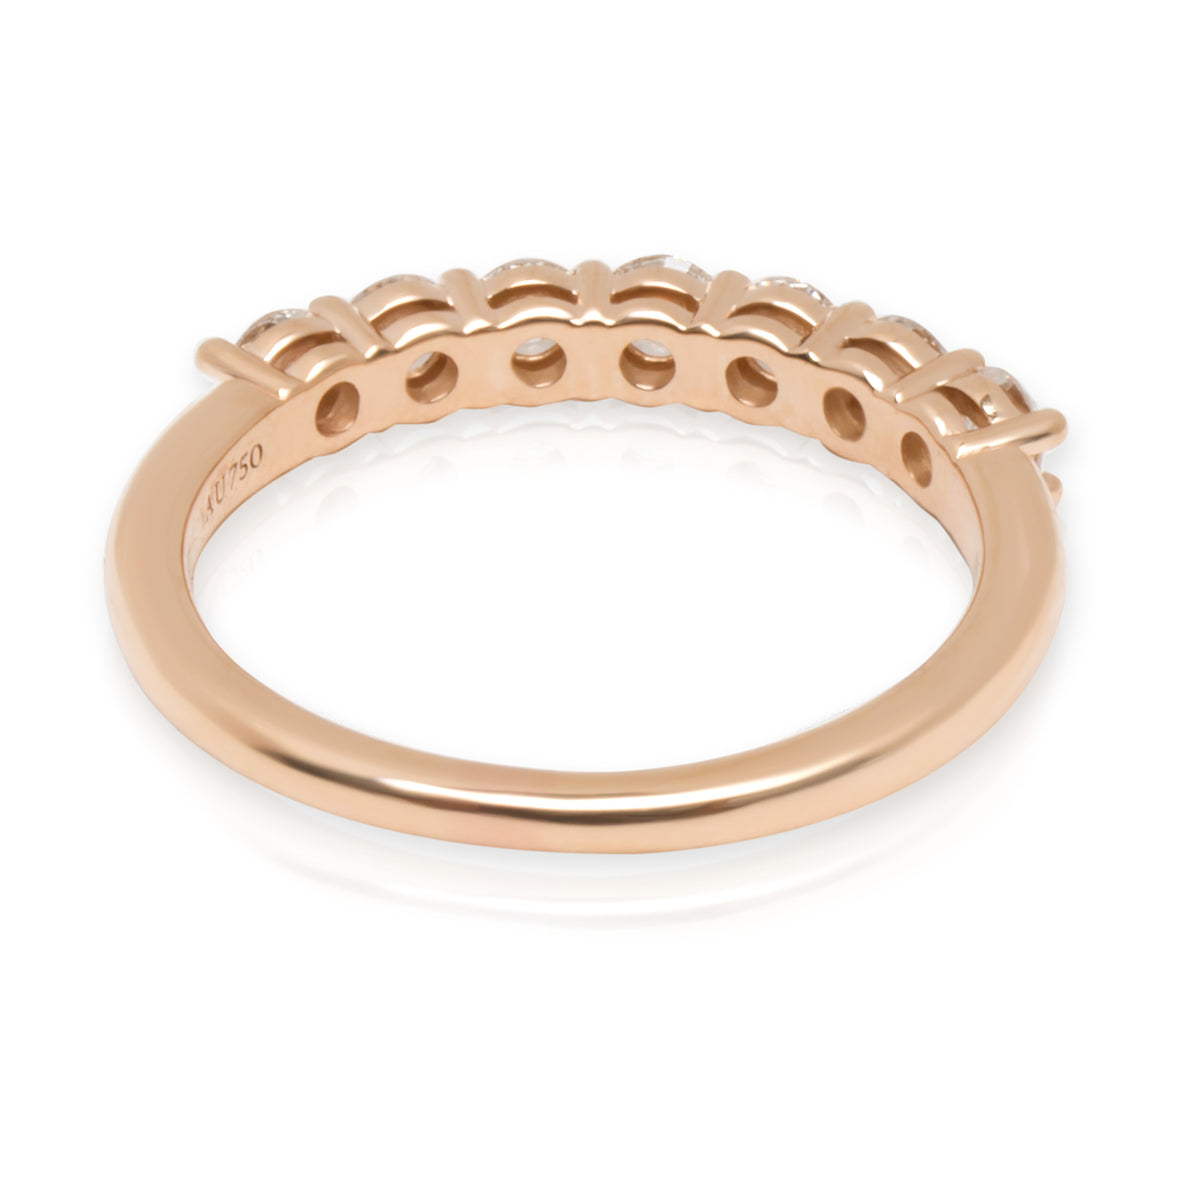 Tiffany & Co. Embrace Diamond Wedding Band in 18KT Rose Gold 0.57 CTW